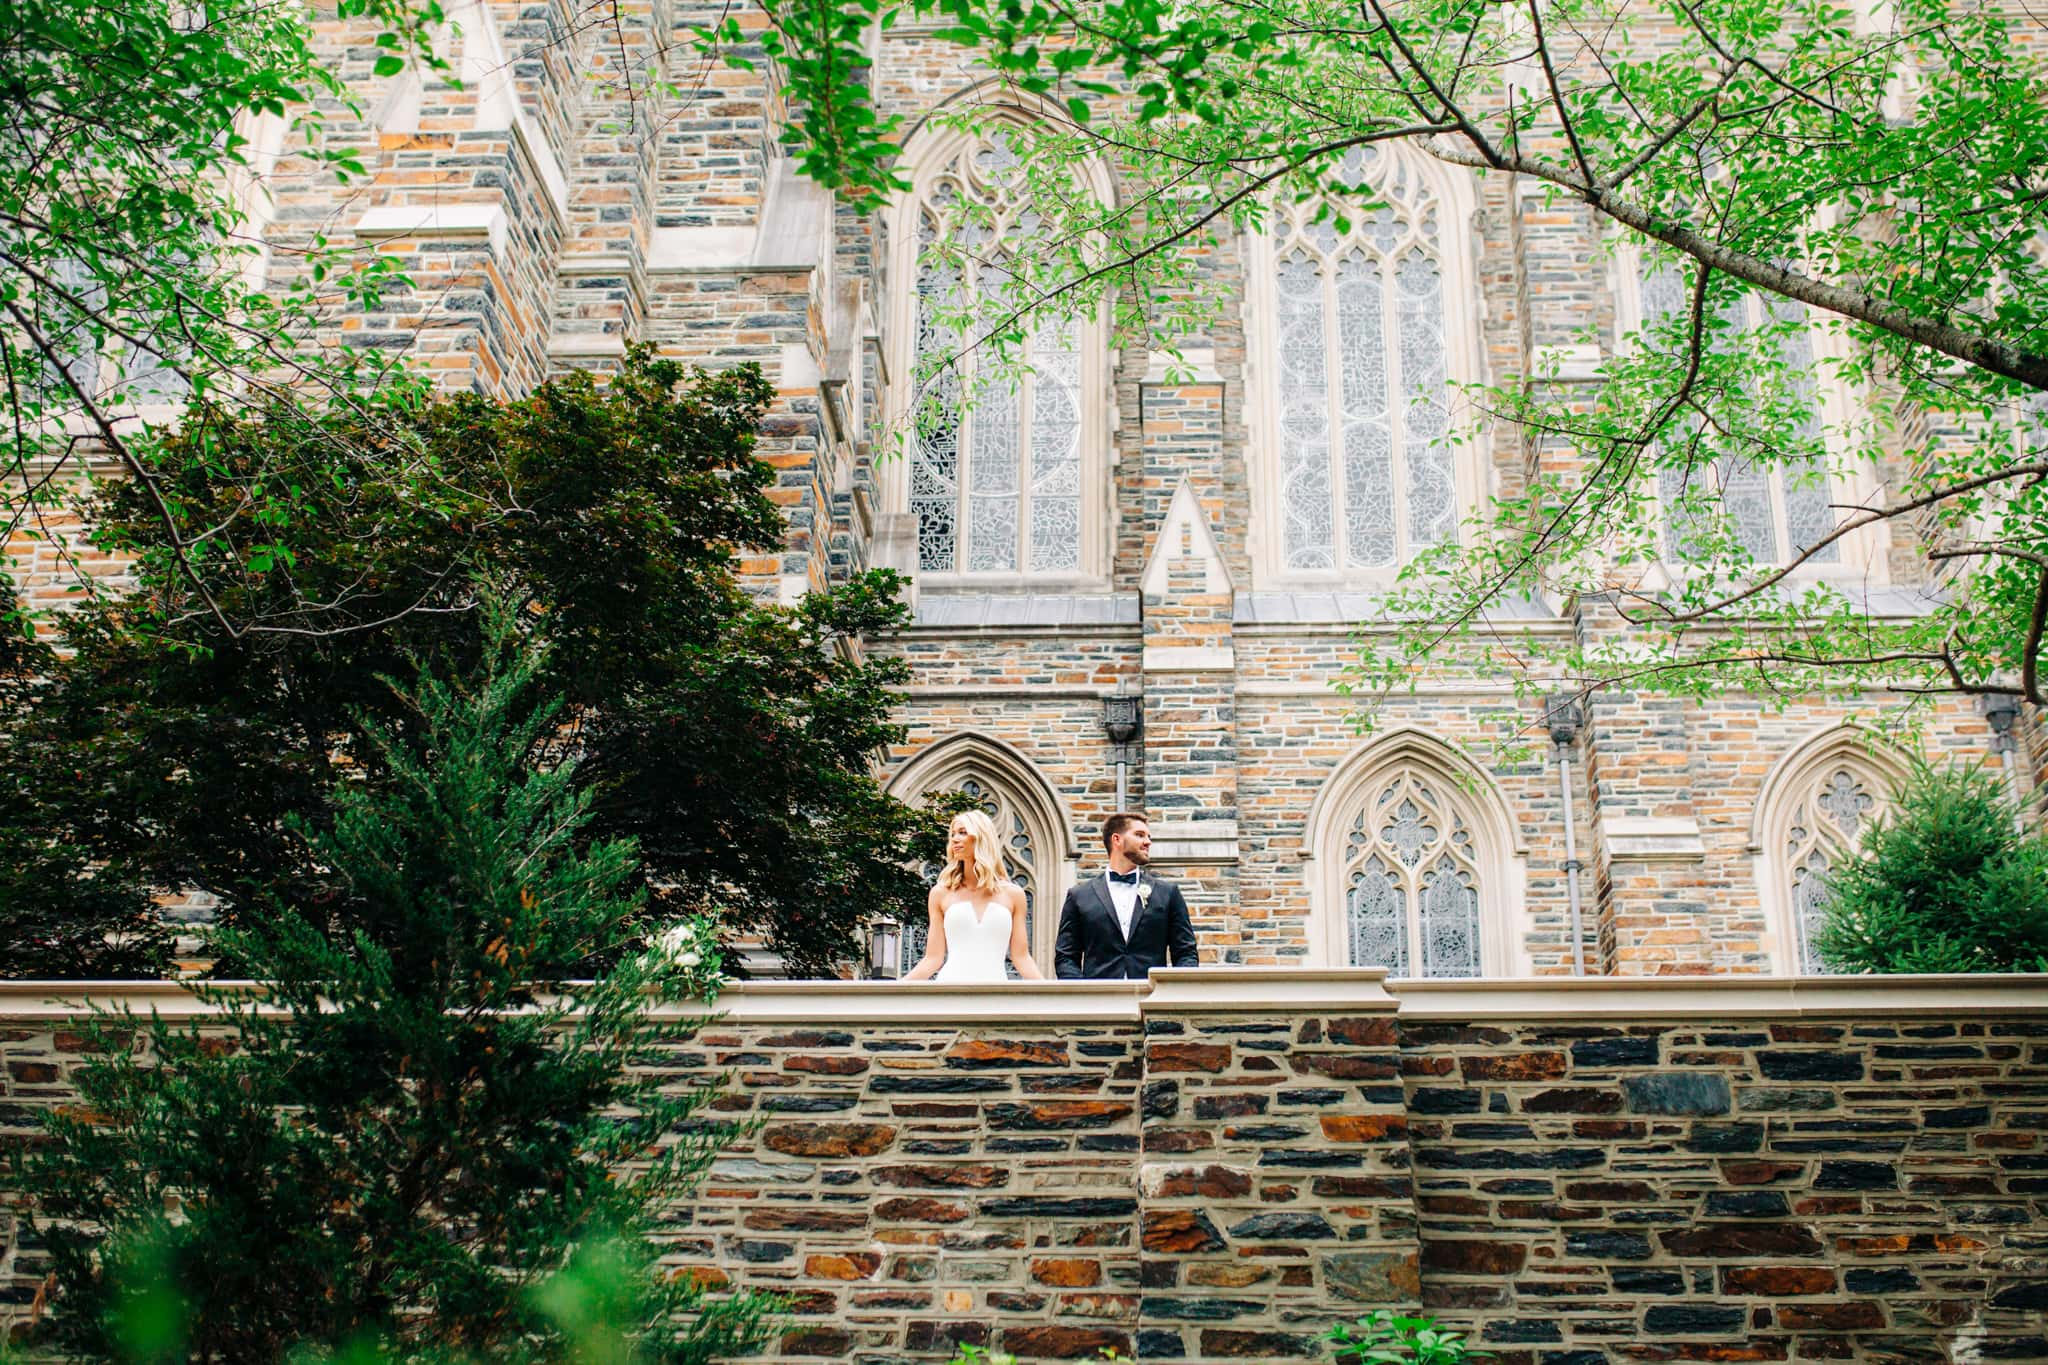 bride and groom holding hands in front of the duke chapel with trees and stones surrounding them